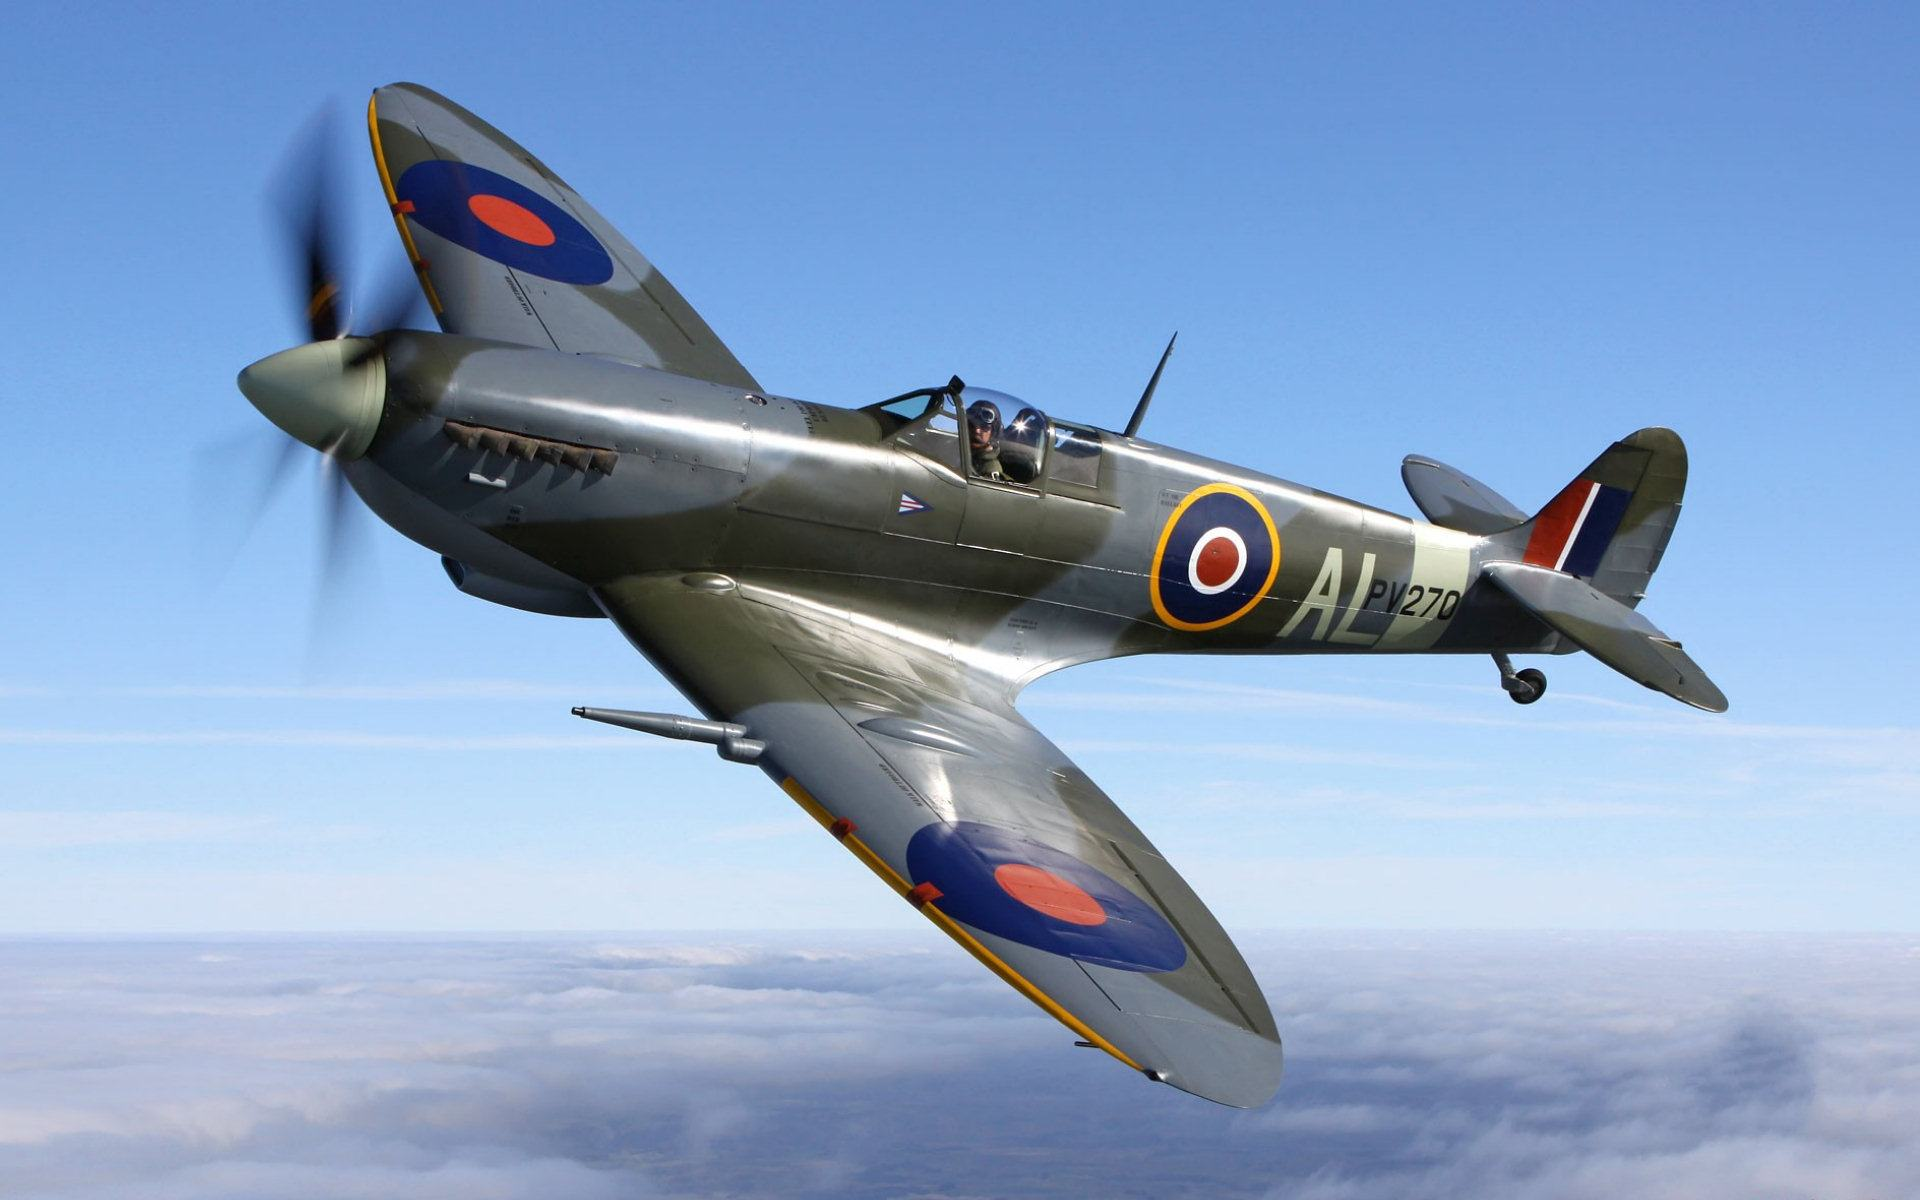 Spitfire-HD-Wallpaper-Free-Download-4